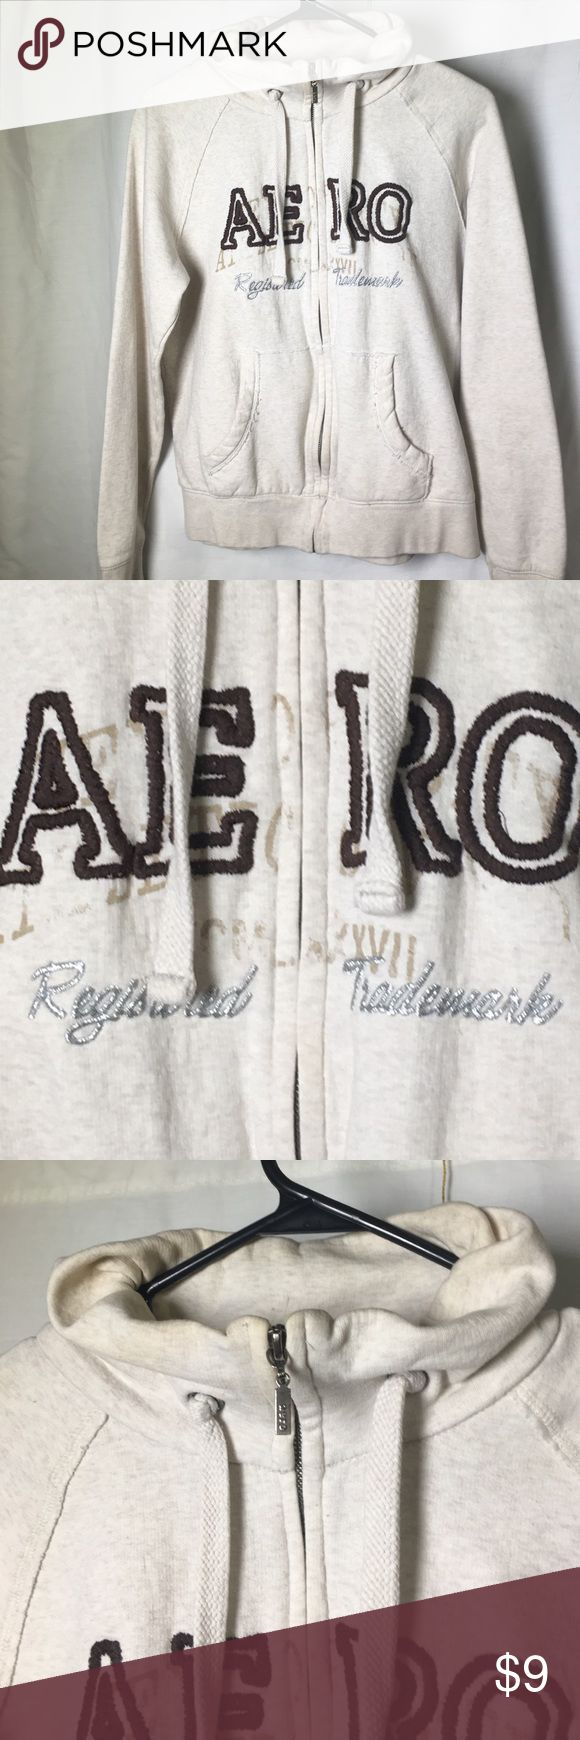 Aeropostale light beige zip up collared jacket Aeropostale zip up jacket. Light beige. Some of lettering wearing off but I think it's supposed to be like that, the style. Size large Aeropostale Jackets & Coats